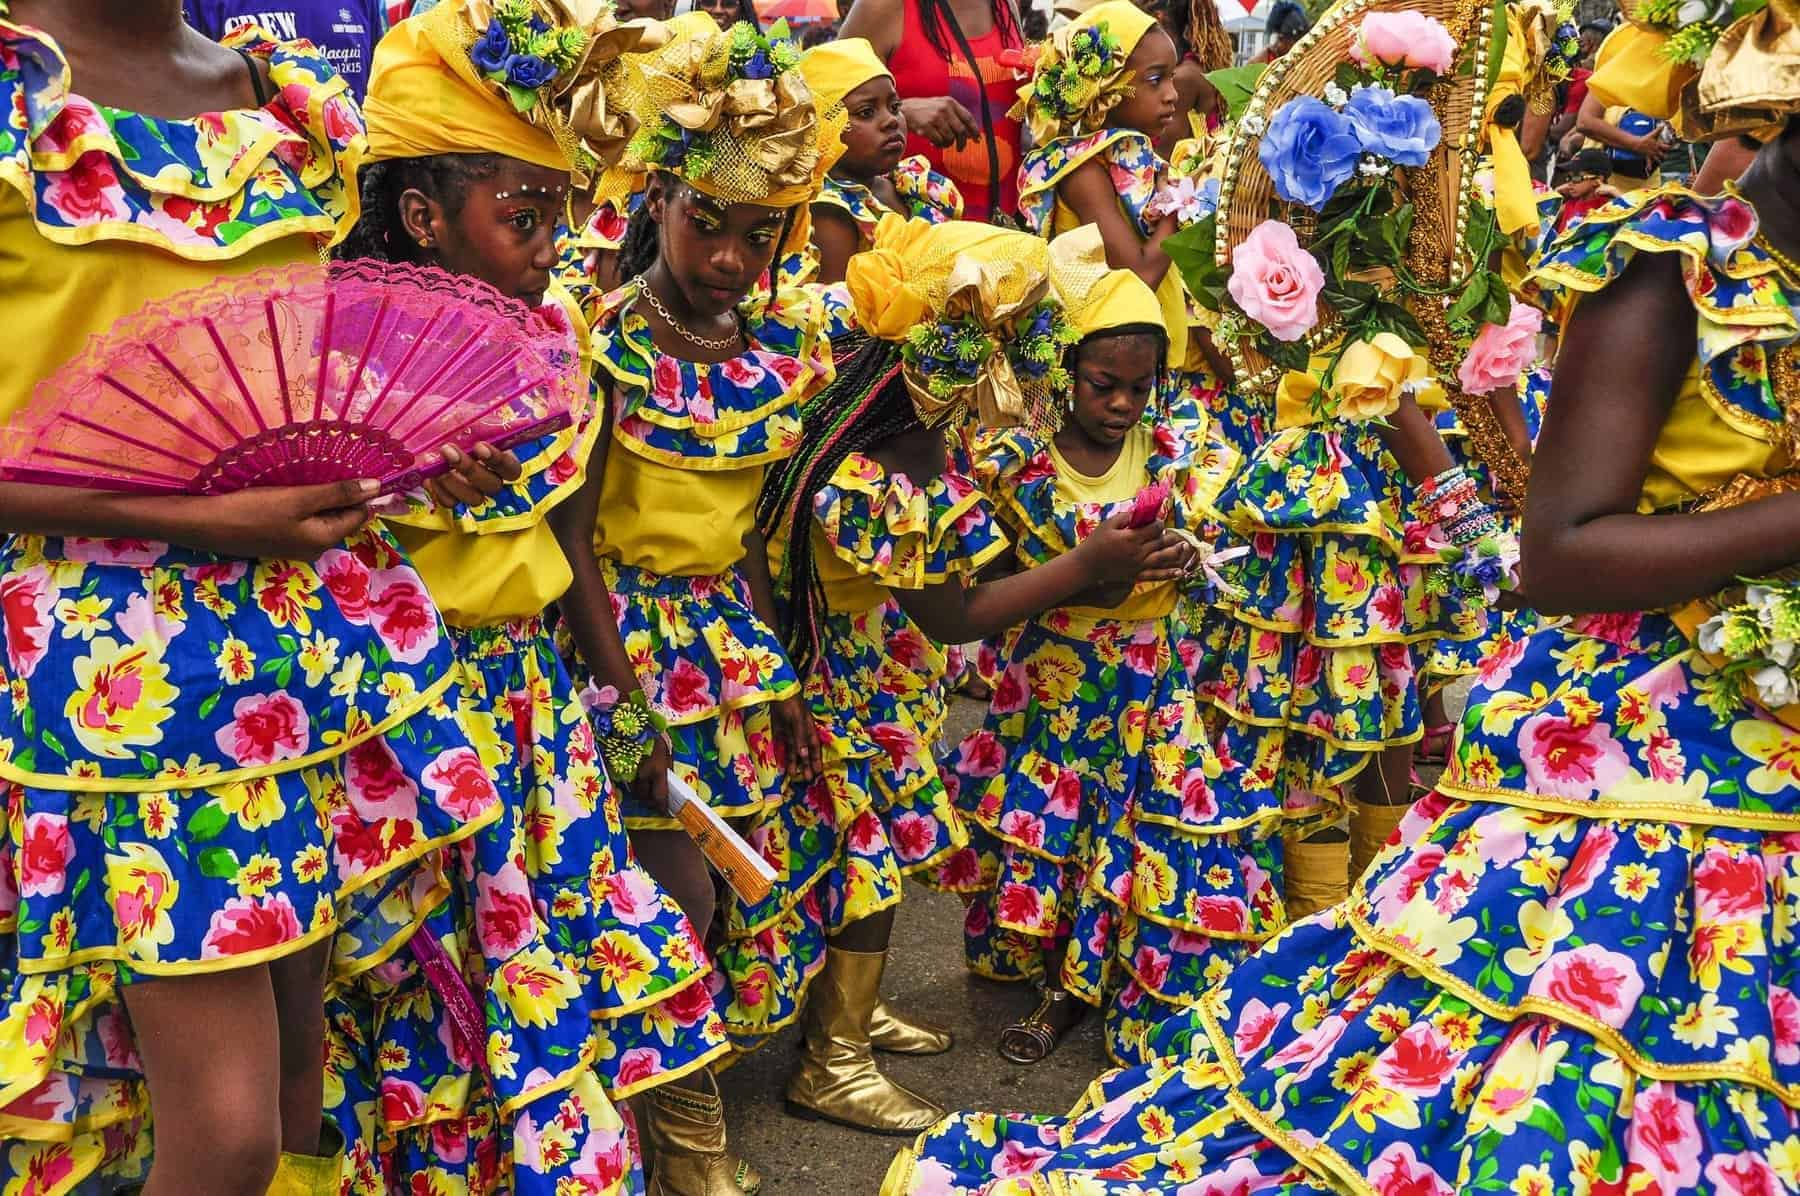 trinidad & tobago. A group of young ladies are dressed in yellow, blue and pink frilly Spanish-styled dresses with head-ties and flowers some carrying fans on Carnival in Trinidad representing the country's Spanish cultural heritage.